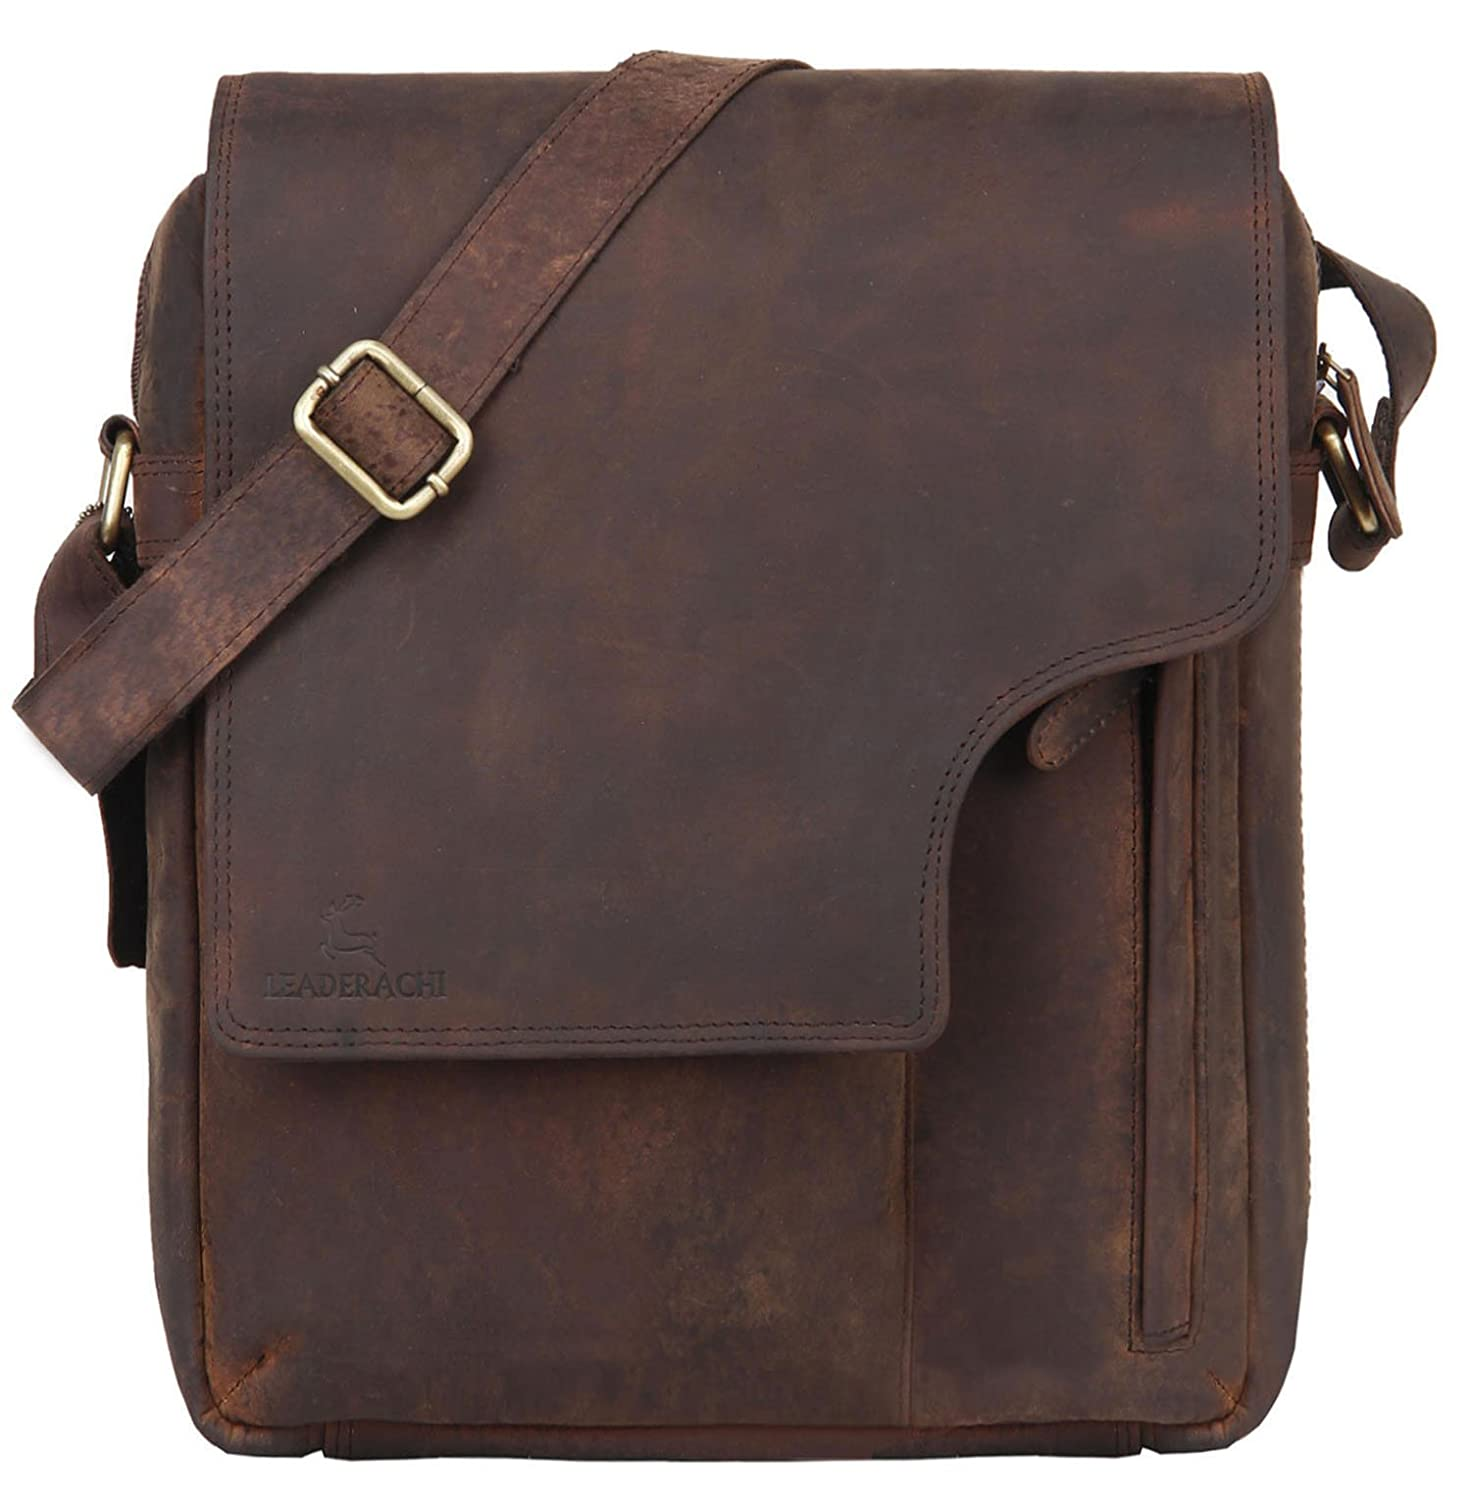 Best Hand Bags To Travel In Plane Fro Men Chloe It Bags